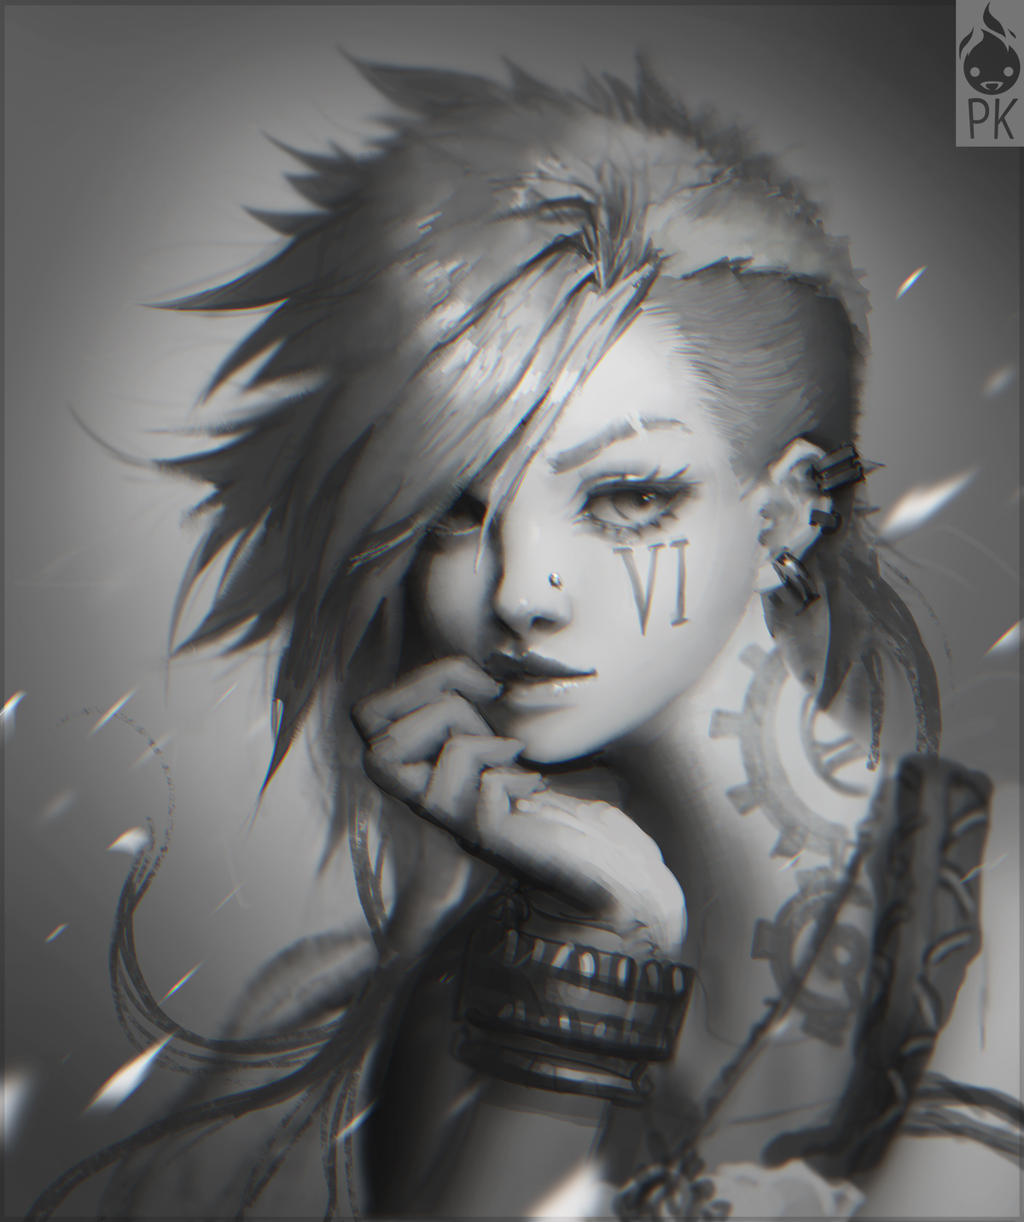 Vi Portrait Fan Art by Zeronis on DeviantArt